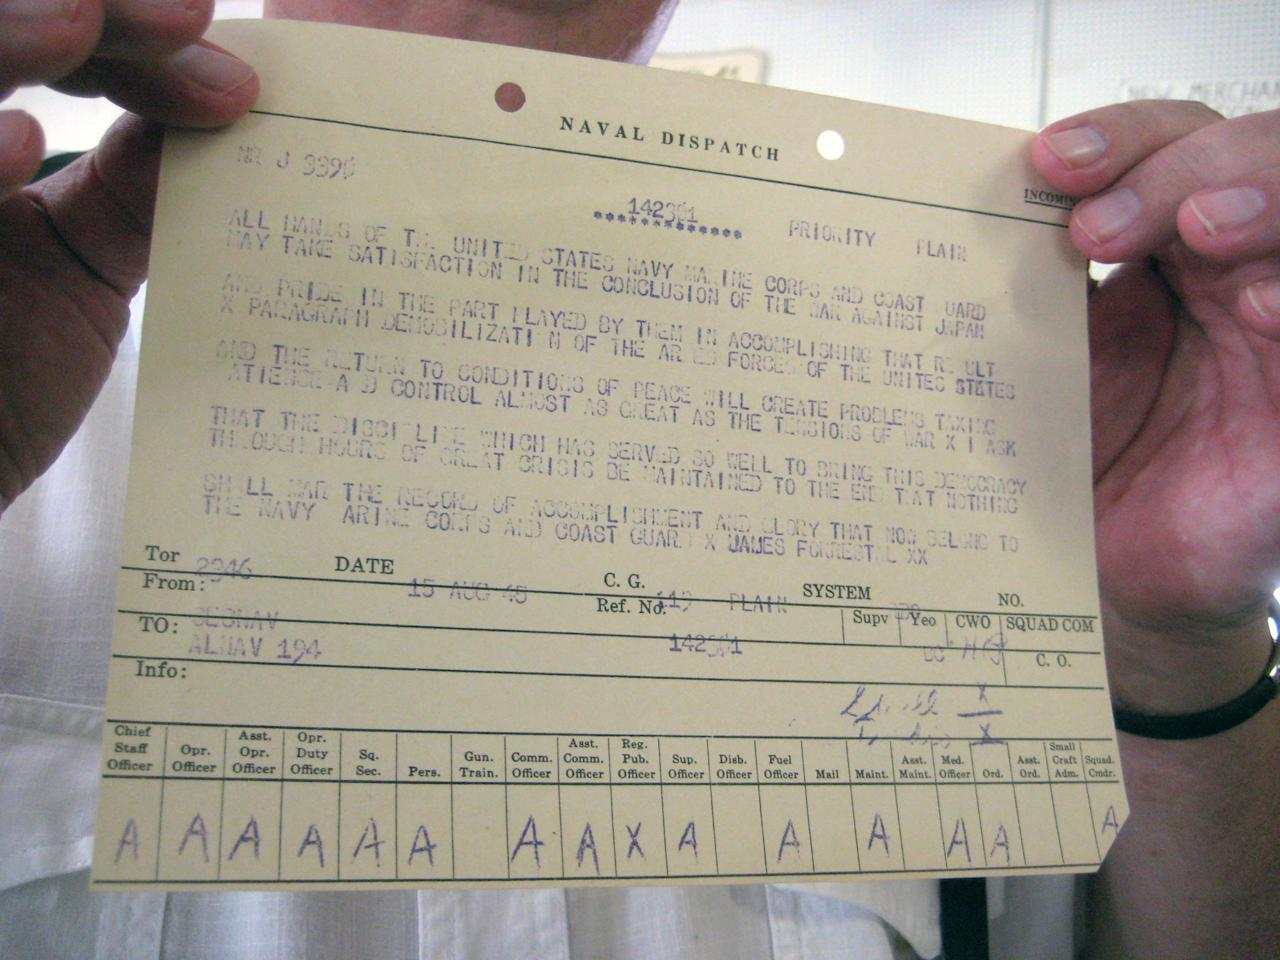 Bob York displays a naval dispatch announcing V-J Day, the end of the war with Japan, at Col. Kirk's Auction Gallery in Millville, Pa., Aug. 6, 2012. York is auctioning the rare cable on Aug. 15, the 67th anniversary of V-J Day. (AP Photo/Michael Rubinkam)